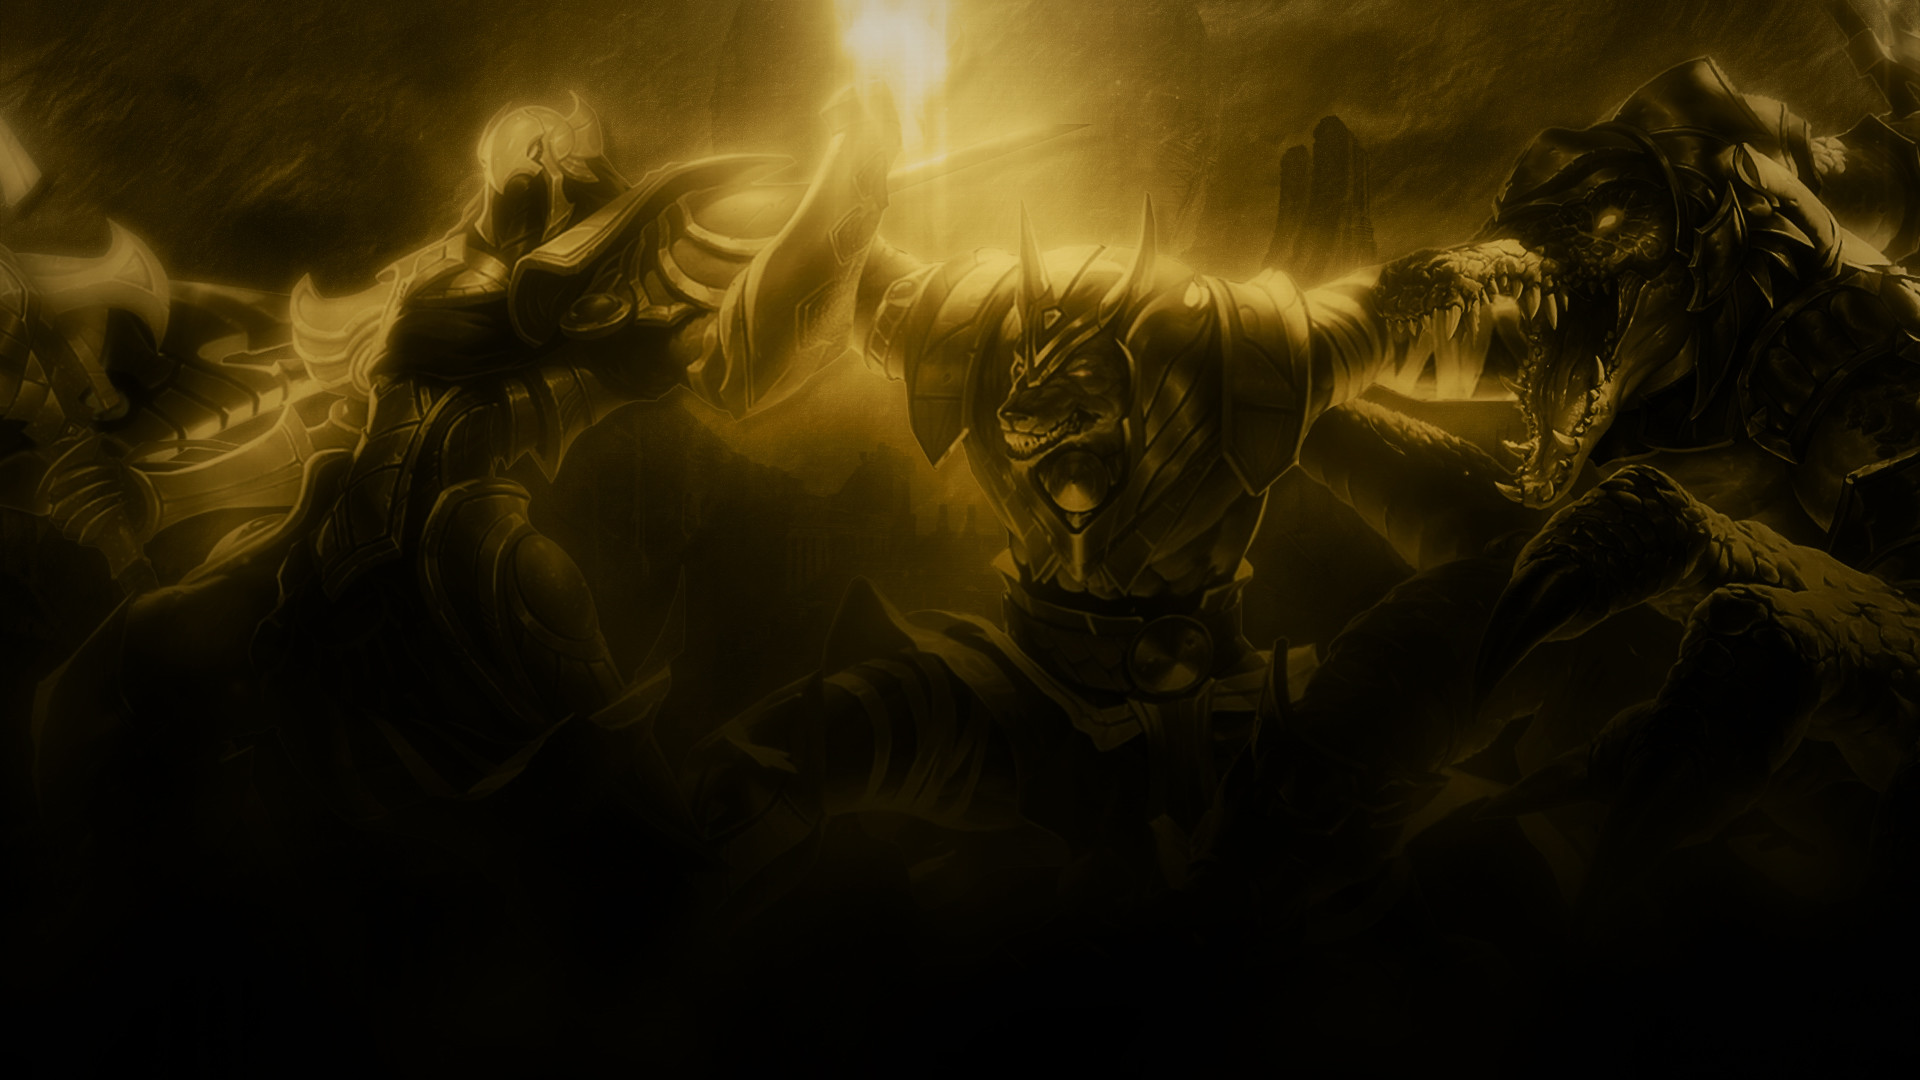 Nasus Wallpapers 71 Images